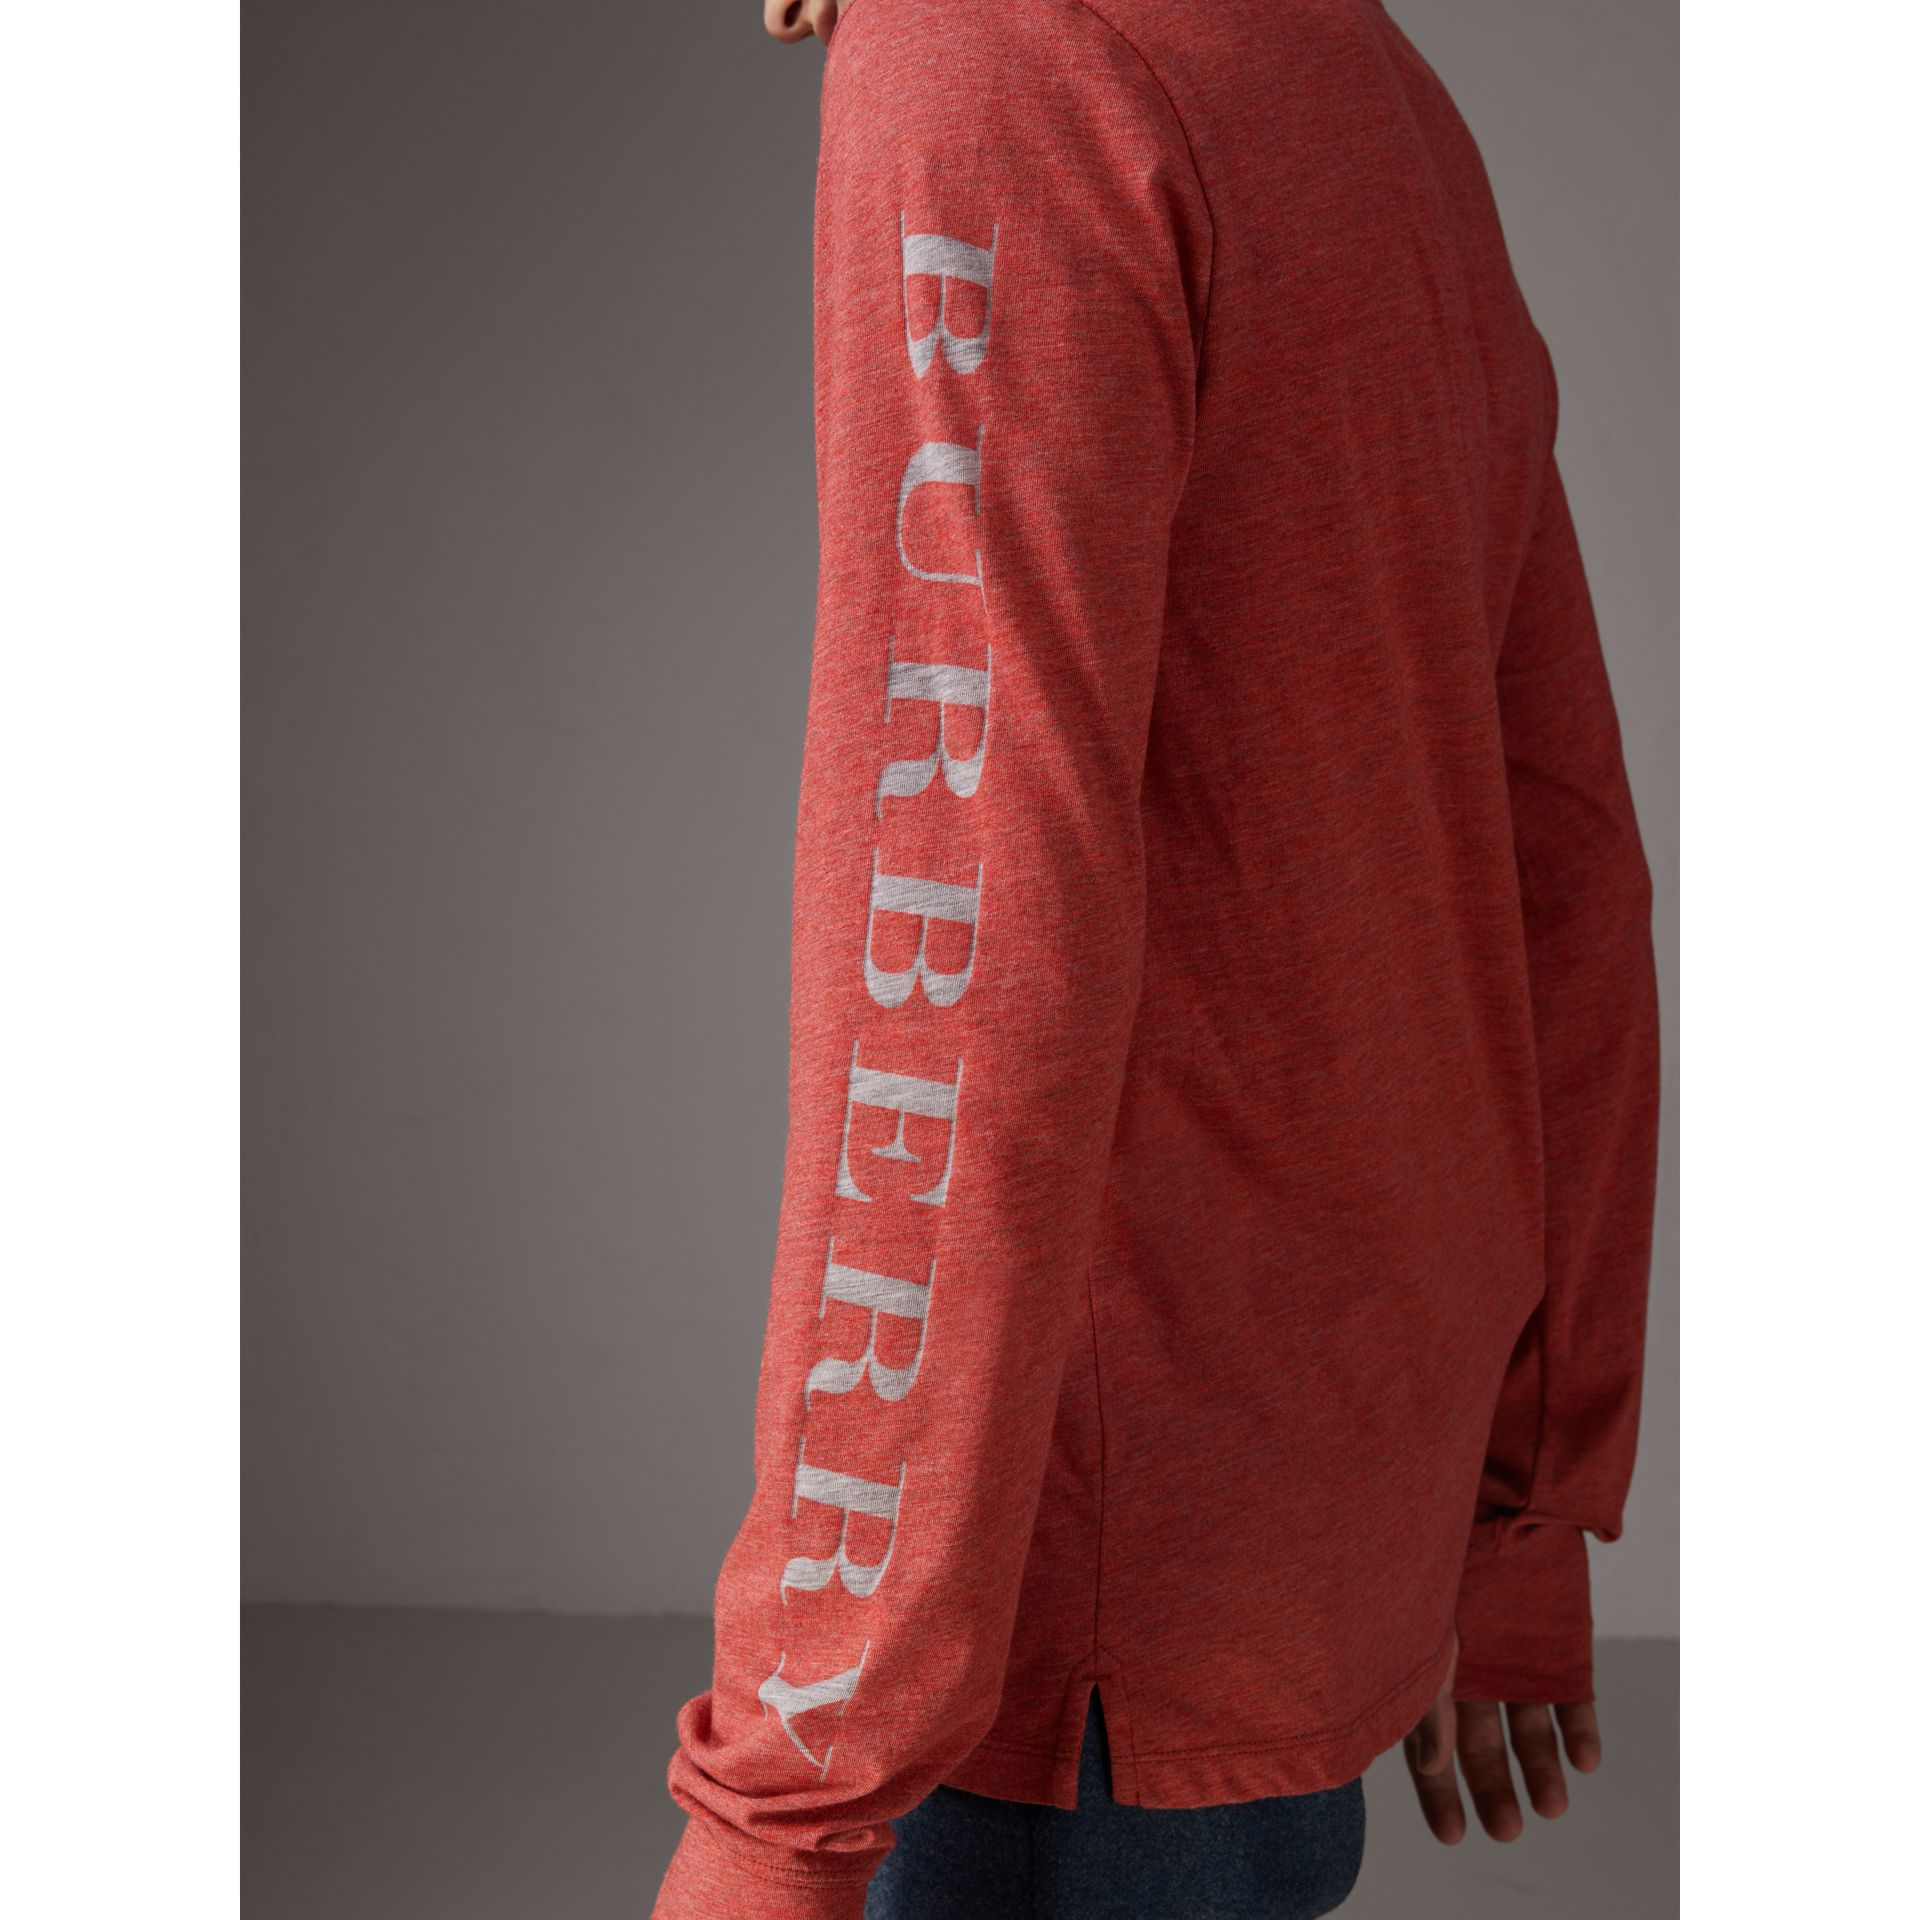 Devoré Jersey Top in Bright Red Melange - Men | Burberry Canada - gallery image 1